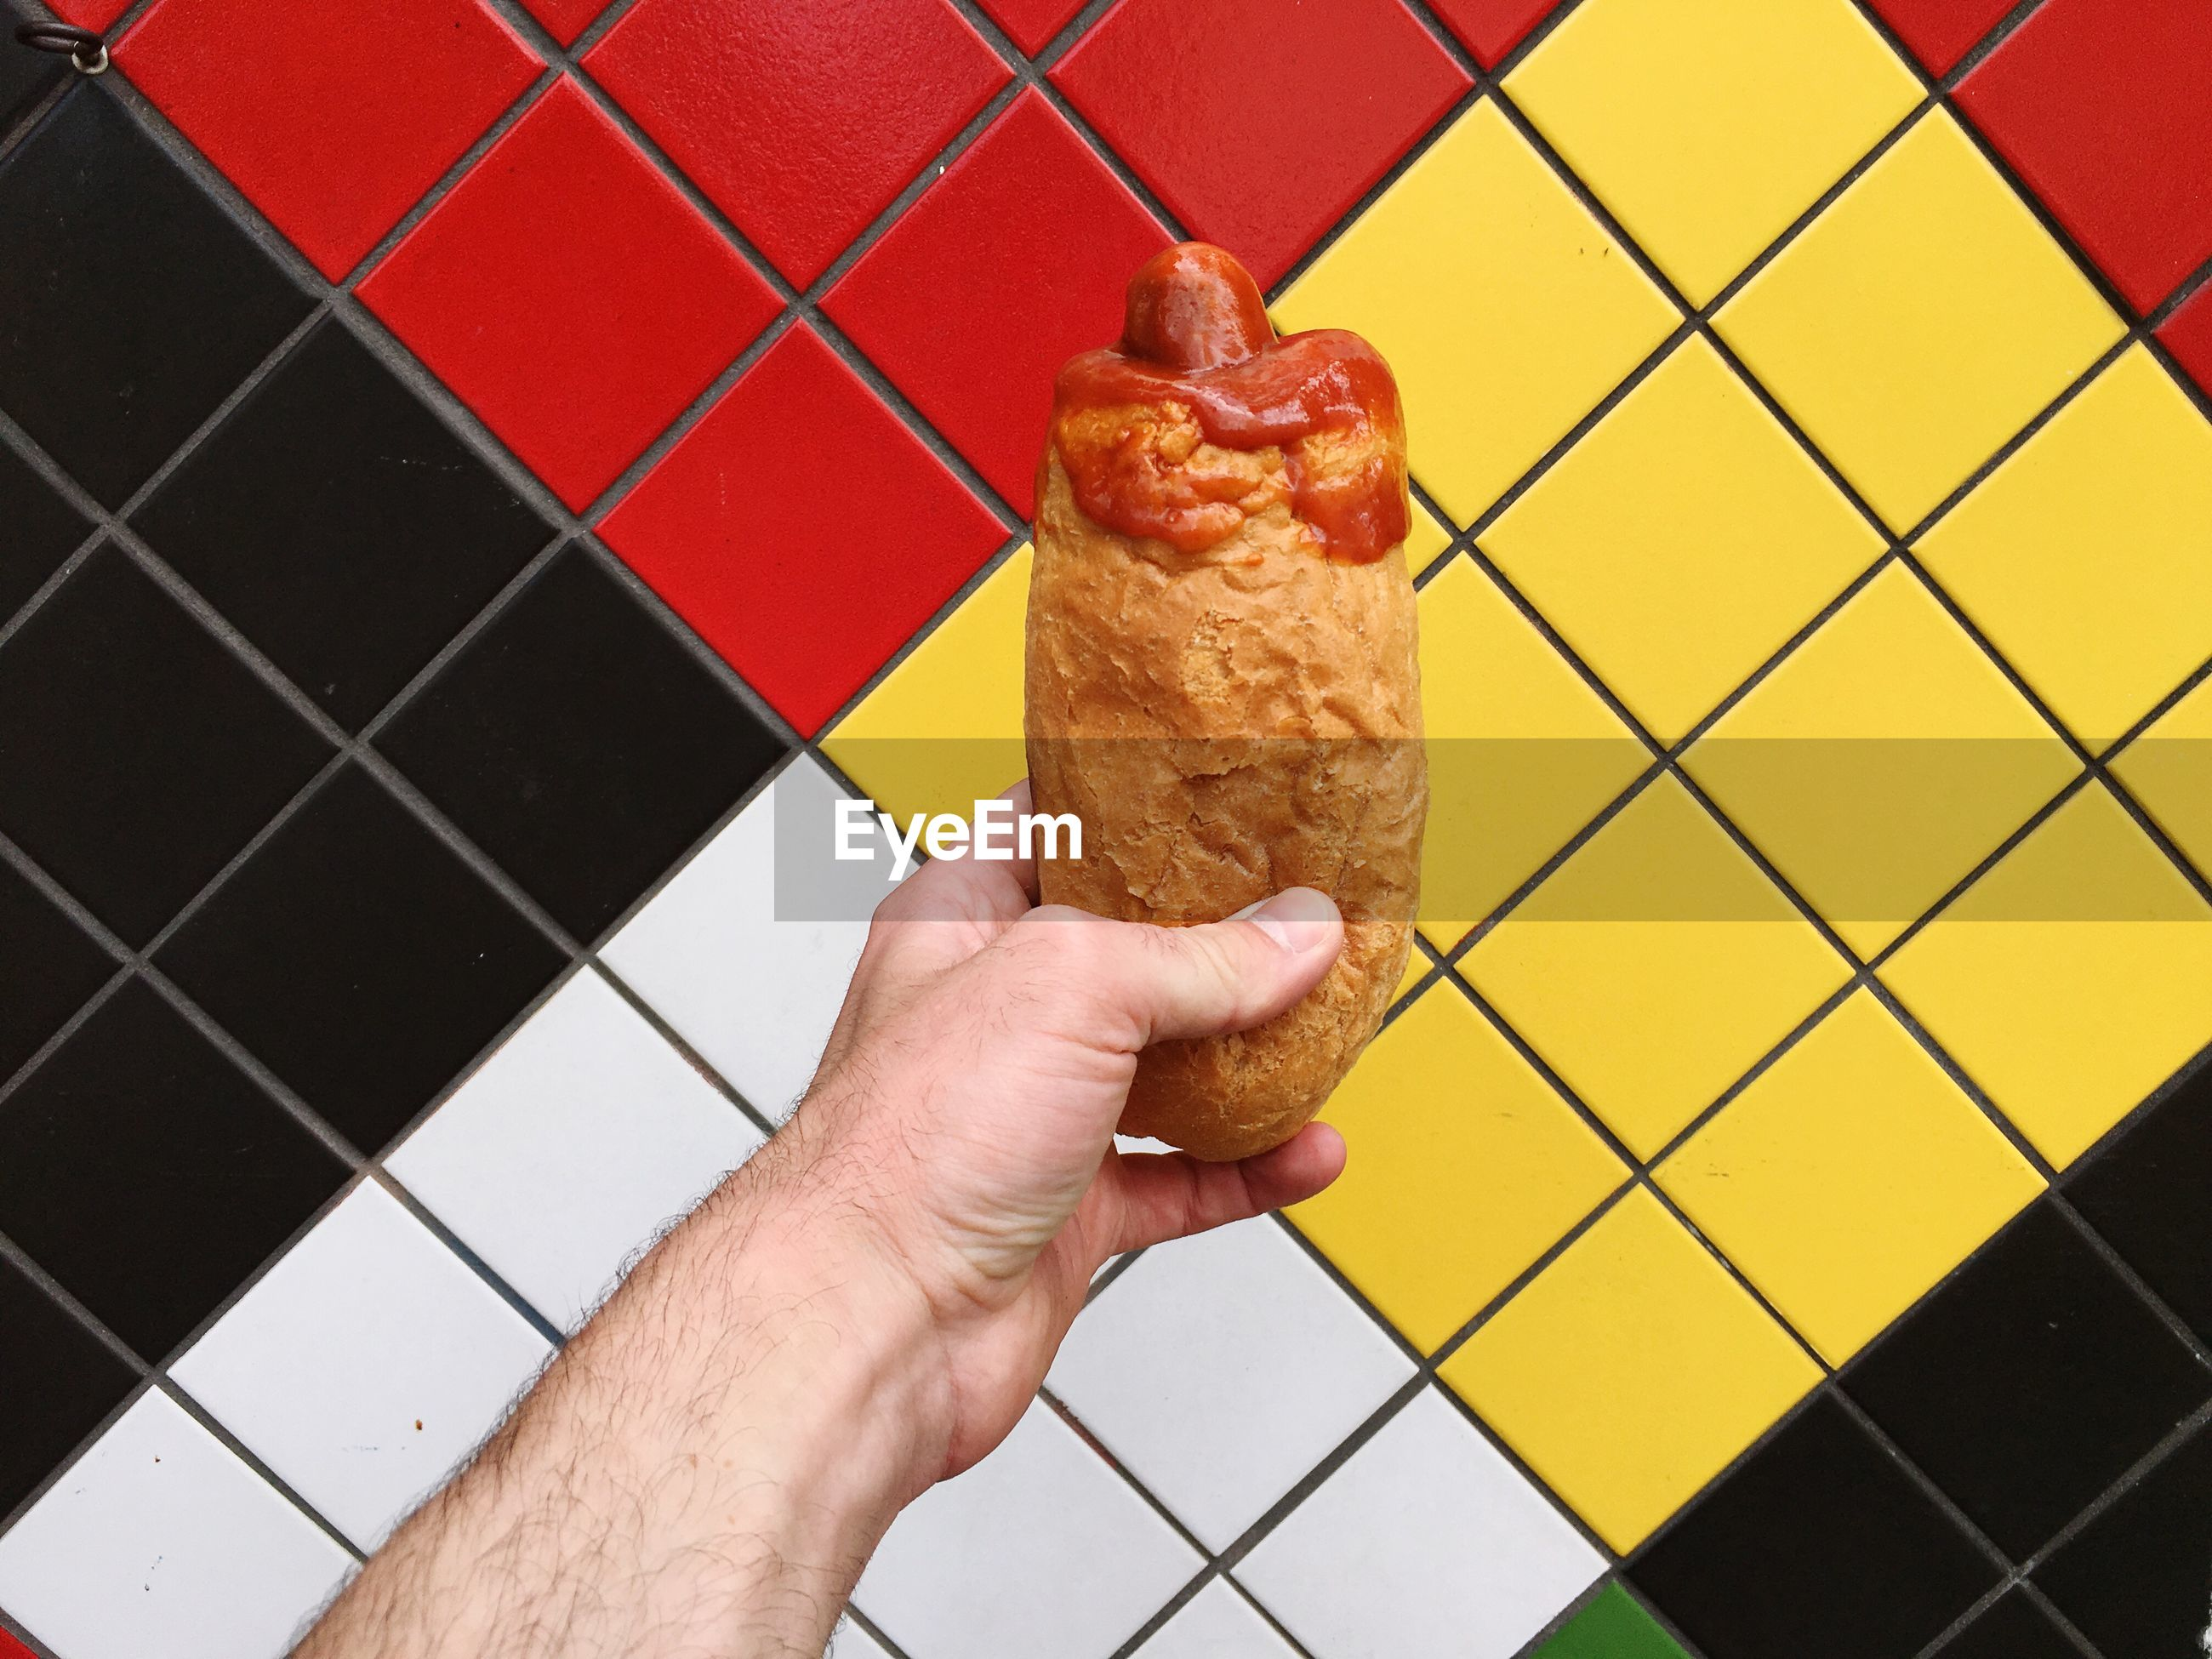 Cropped hand holding bread roll in front of tiled wall